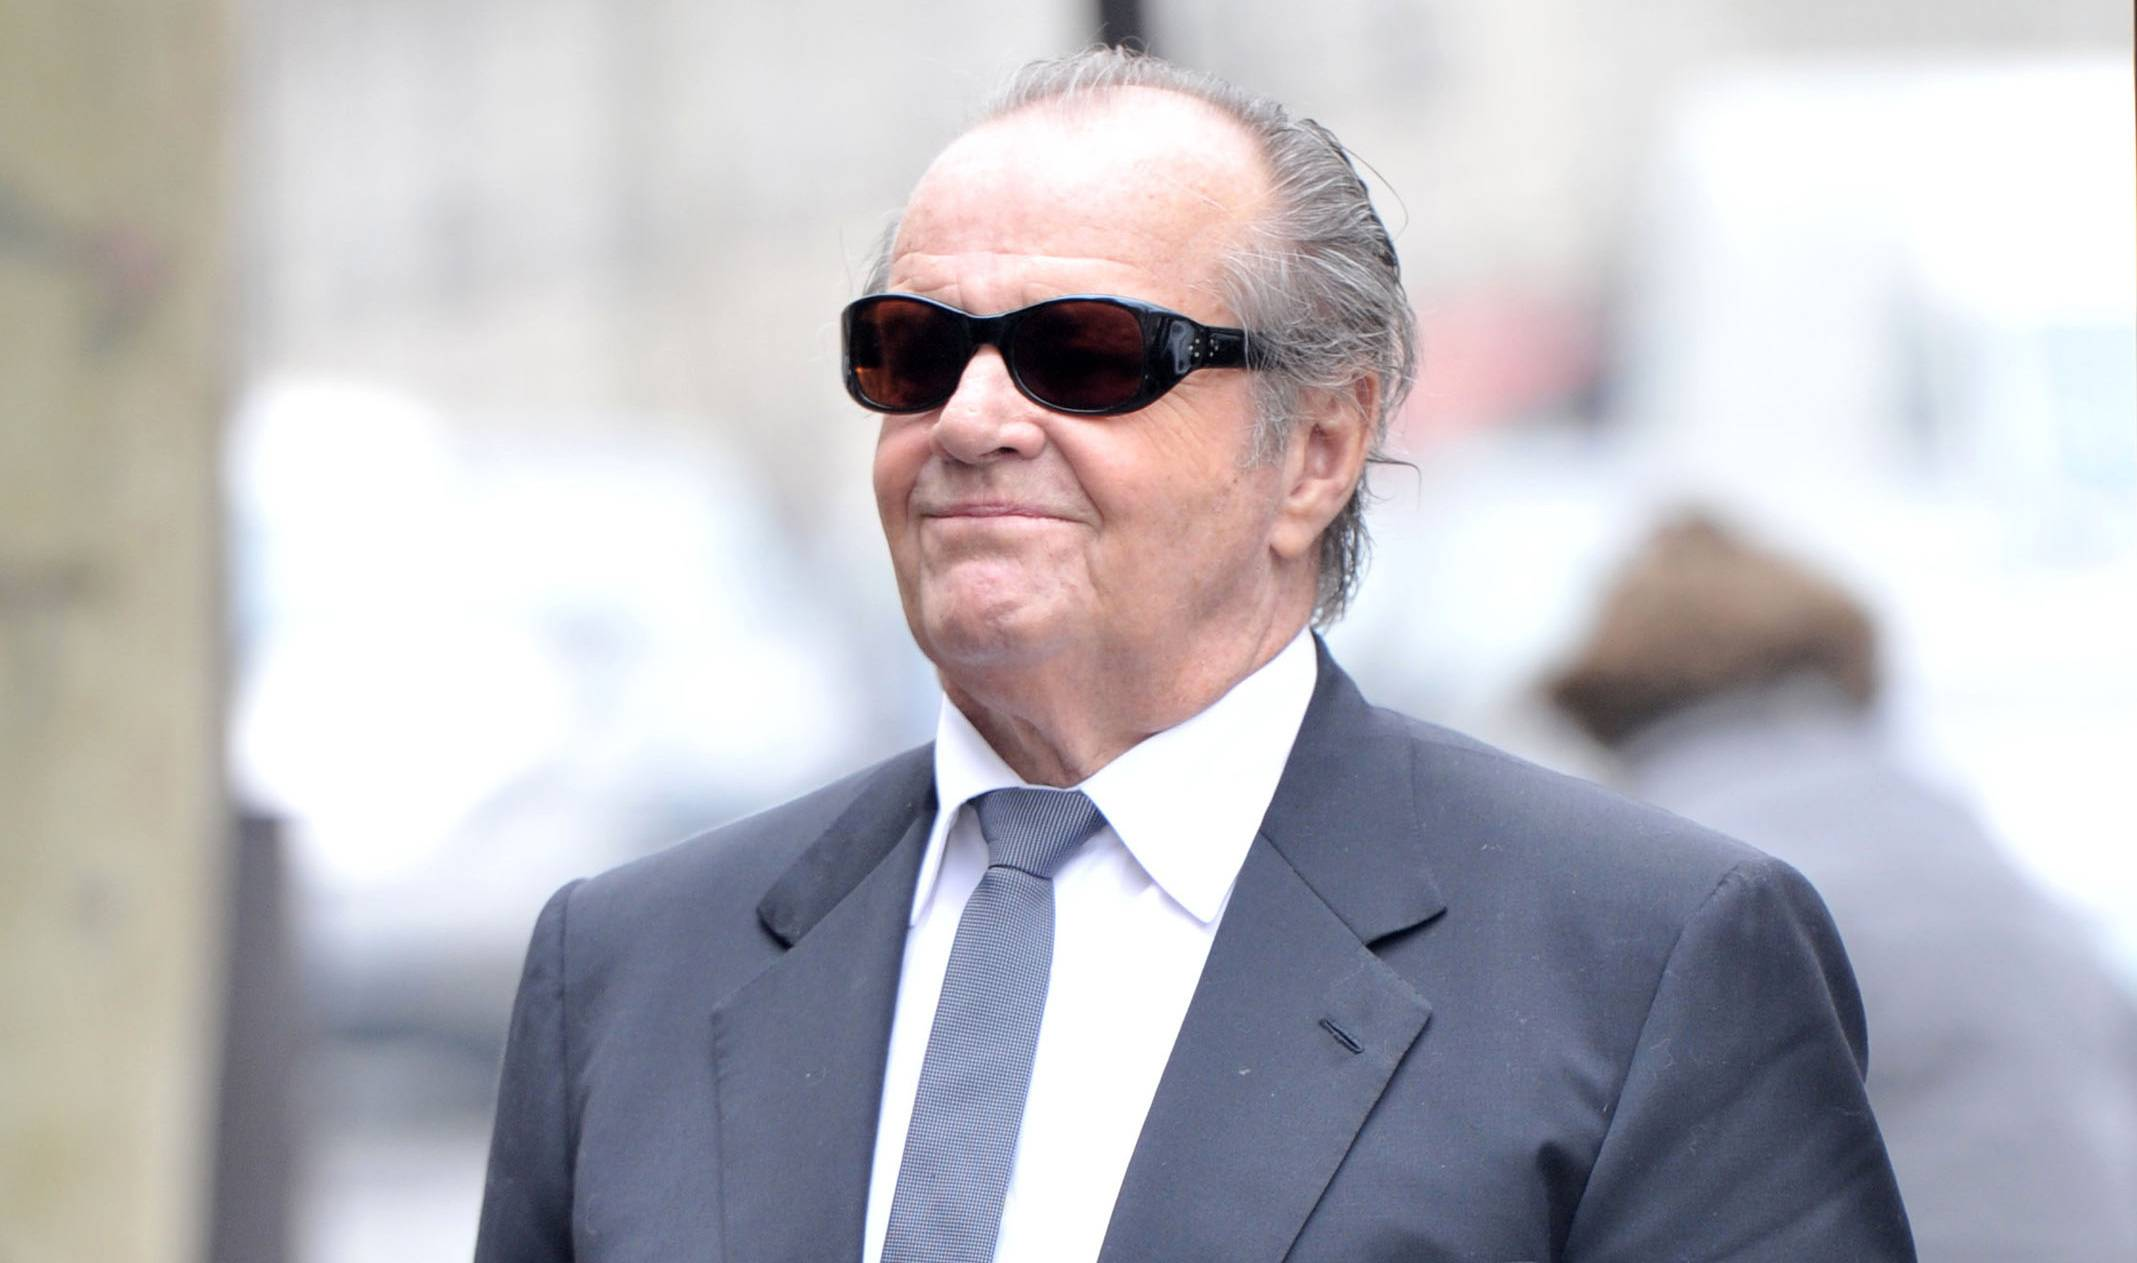 Jack Nicholson loses his memory and leaves the cinema: Spectators are in shock 05.09.2013 17